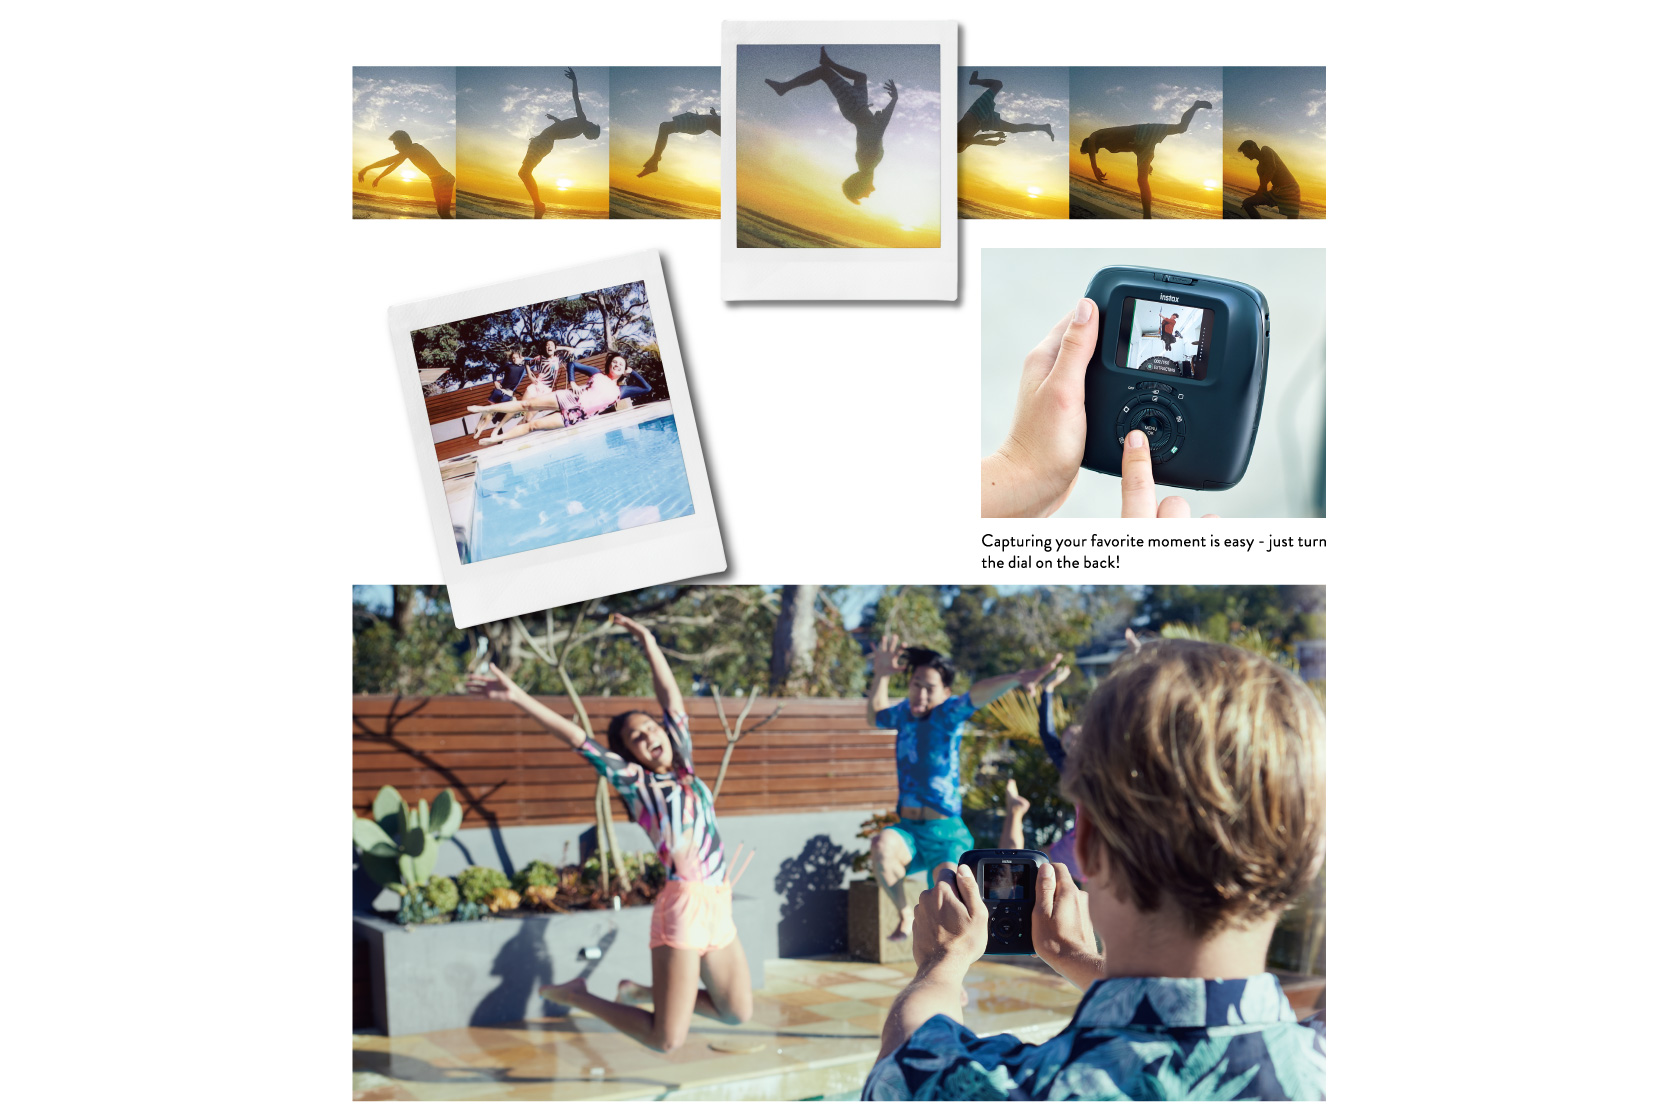 Images with a sequence of a person doing flip and a photo of girls falling into pool also image on someone turn the dail on the back of SQ20 and person shooting photo at the pool with SQ20